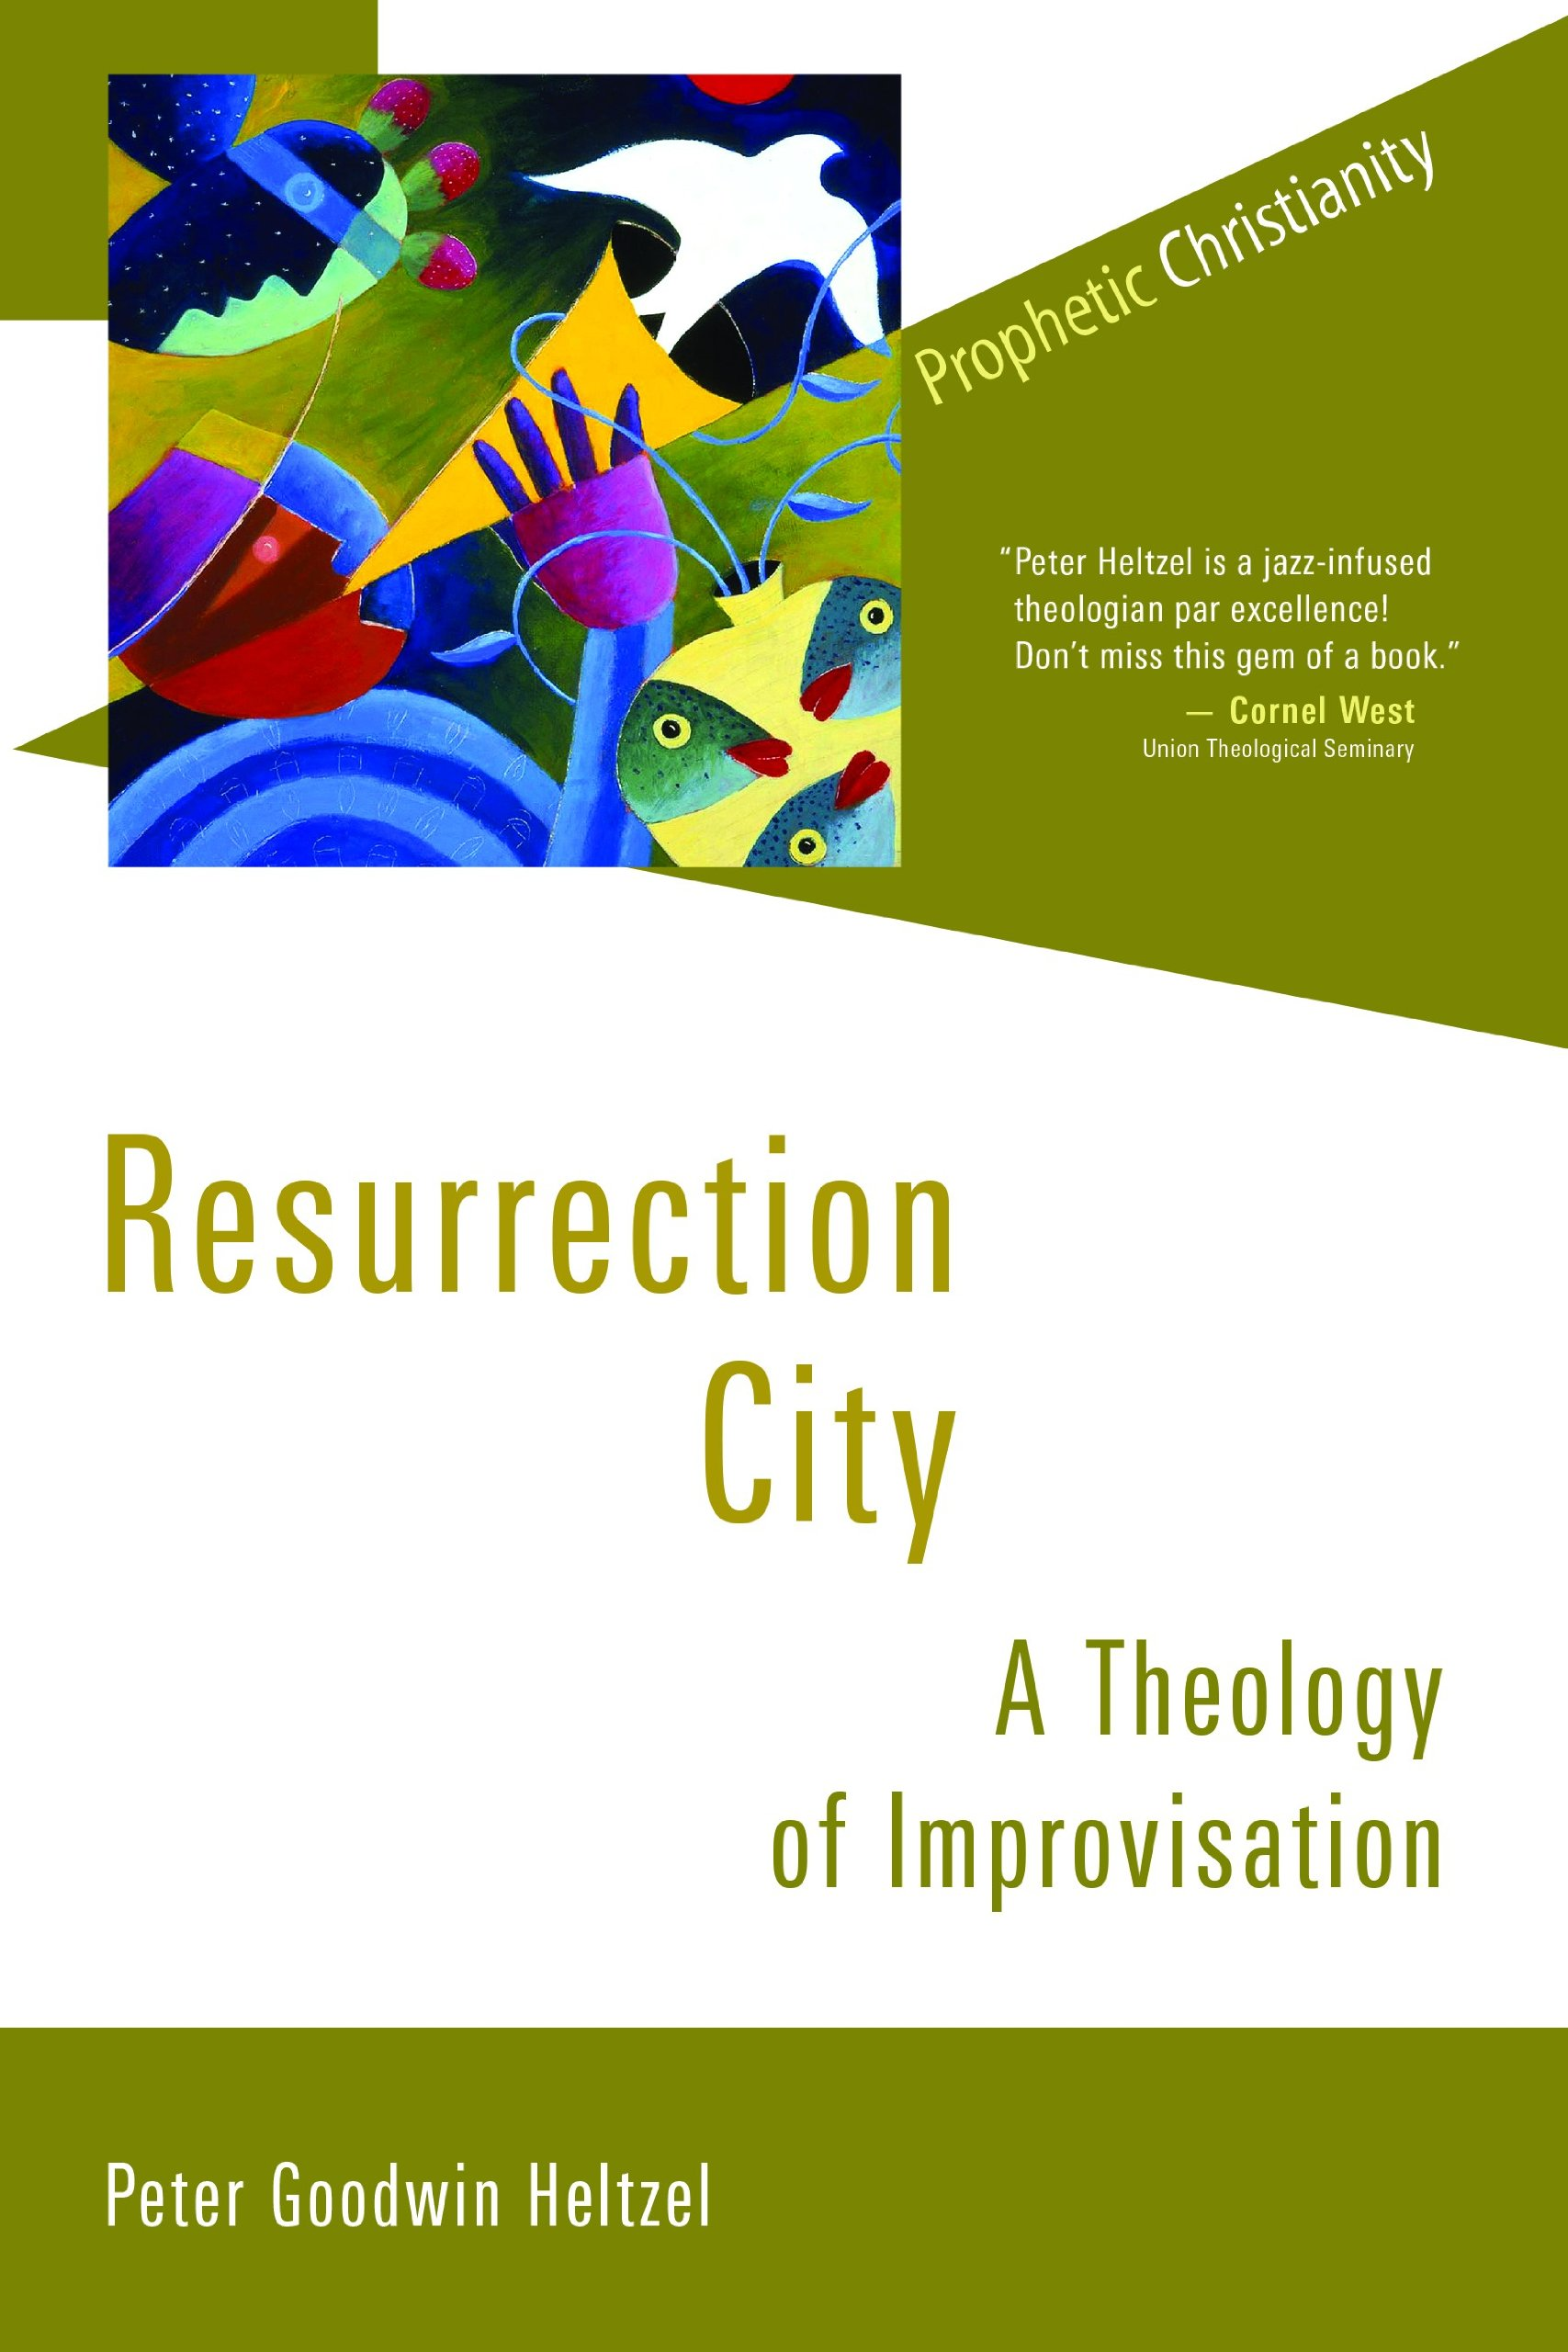 Book review: Resurrection City